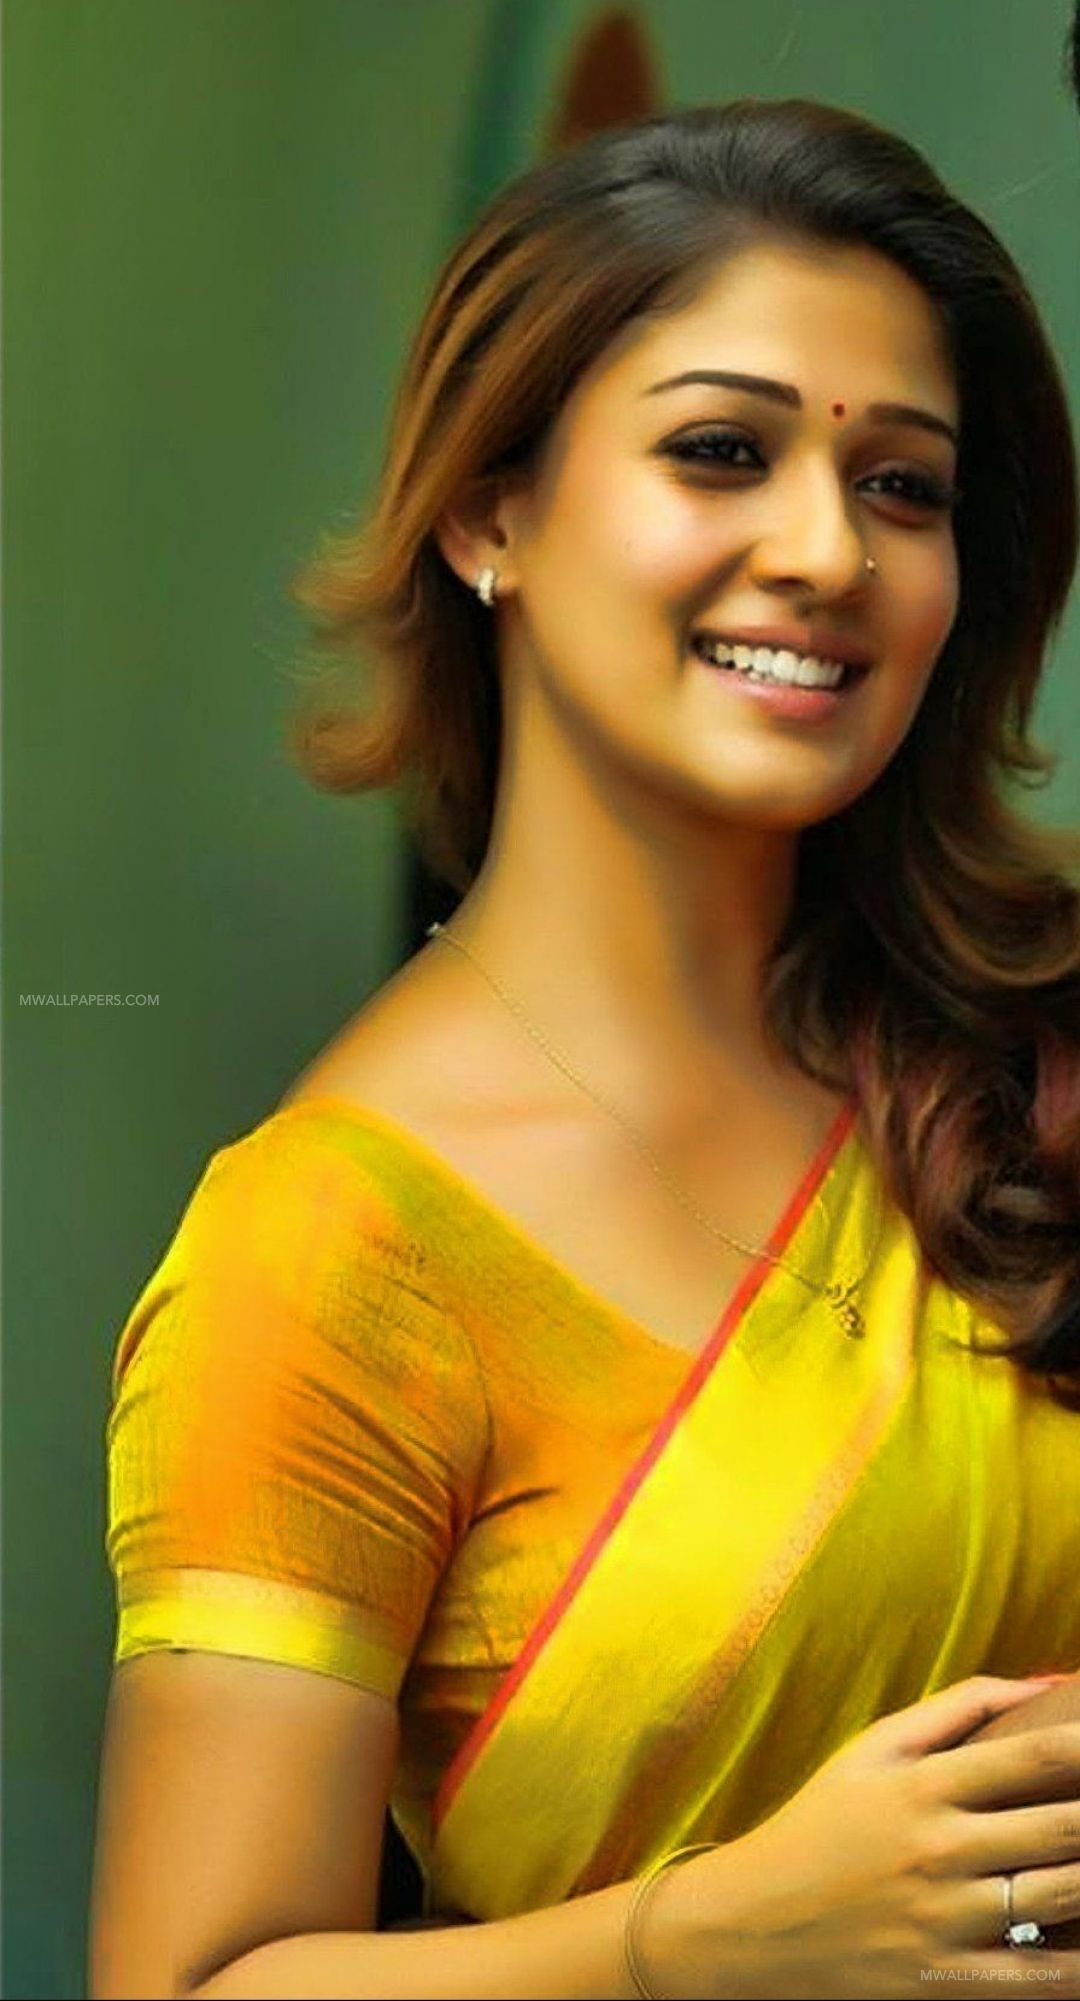 1285 Nayanthara Hd Wallpapers Desktop Background Android Iphone 1080p 4k 1080x2001 2020